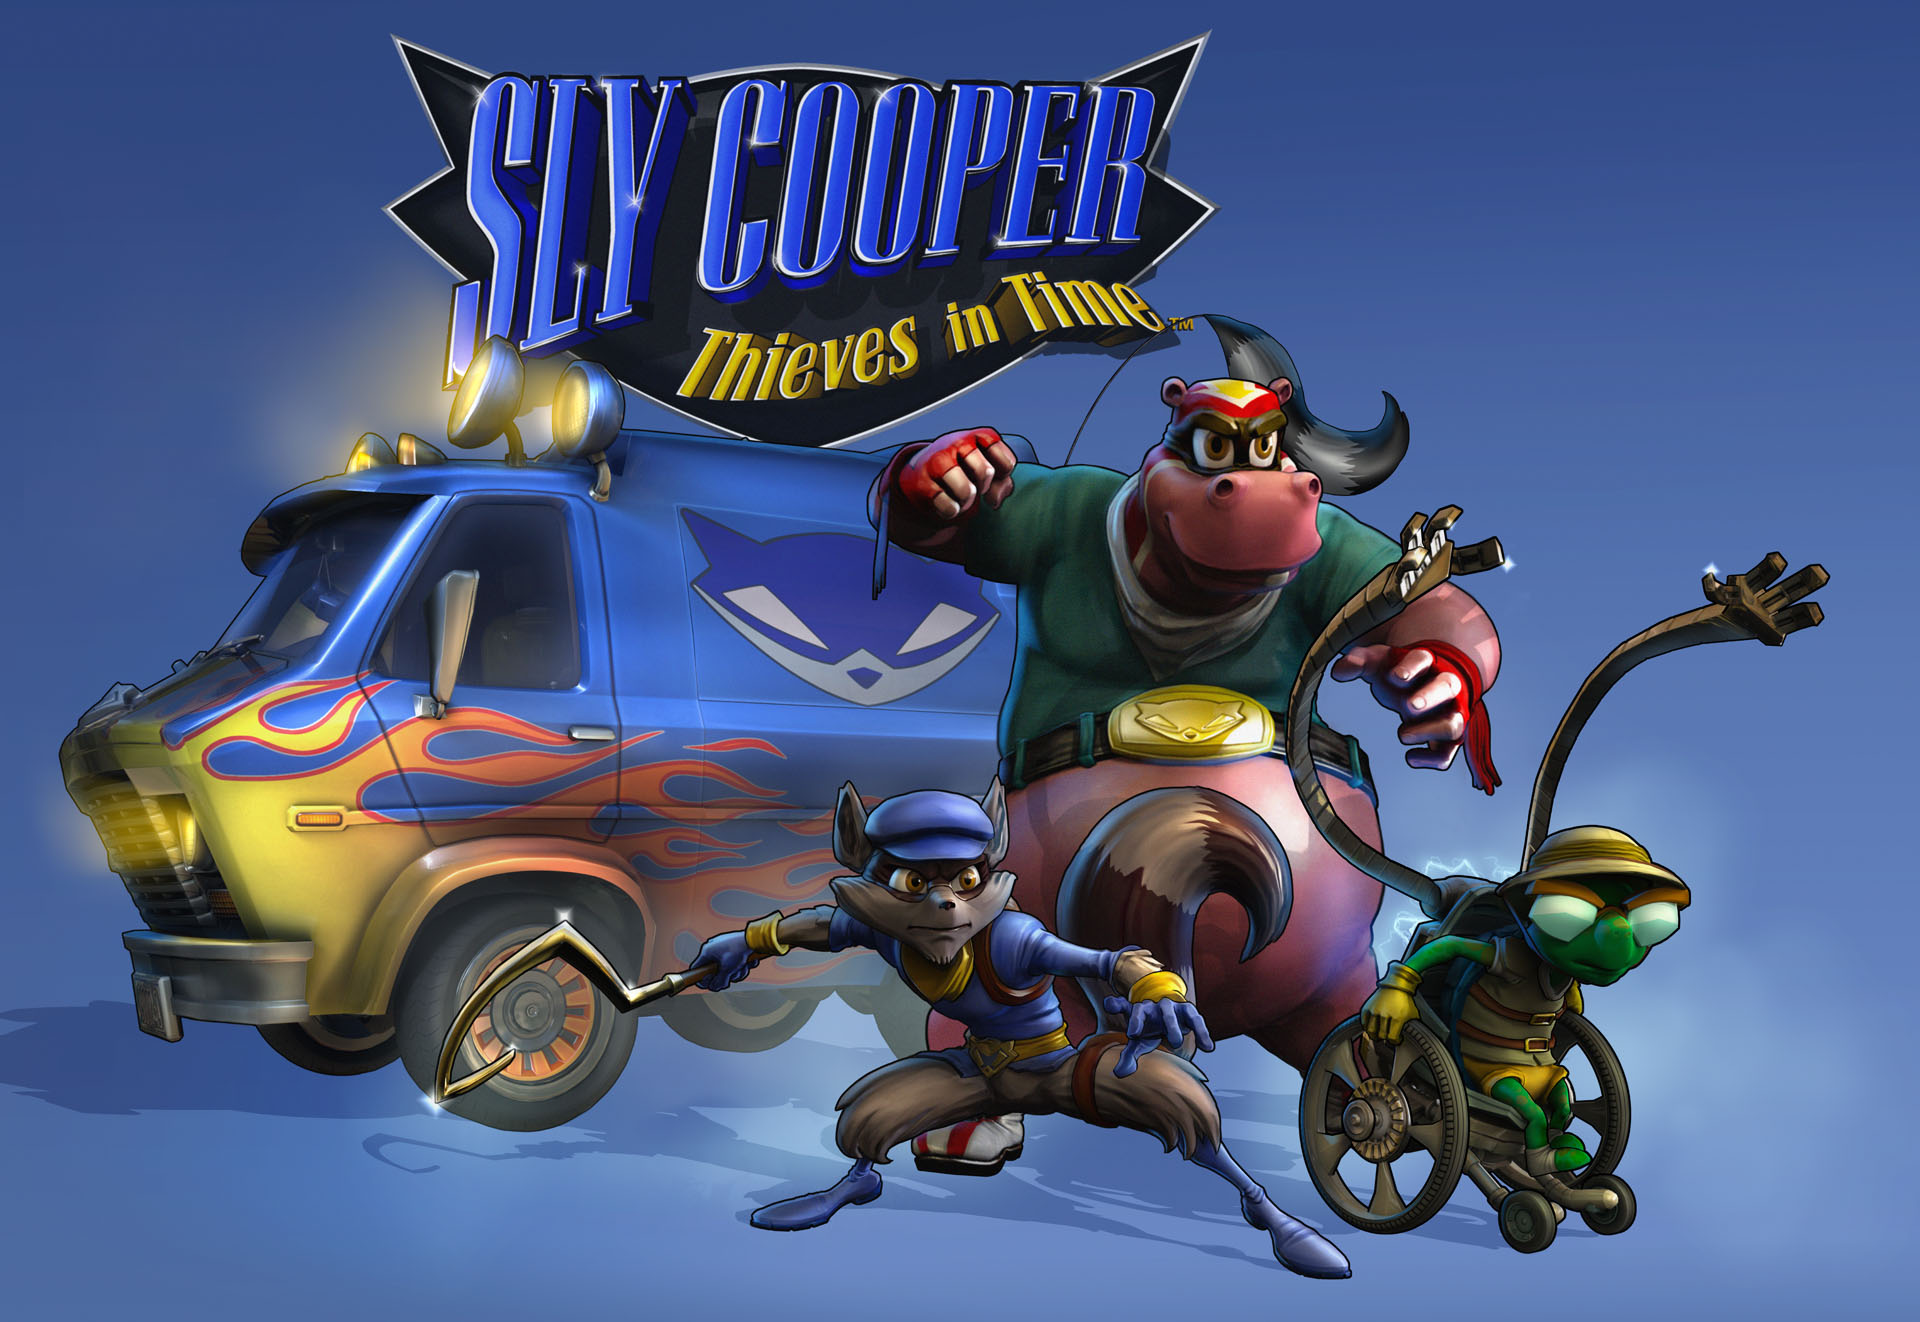 sly-cooper-thieves-in-time-characters